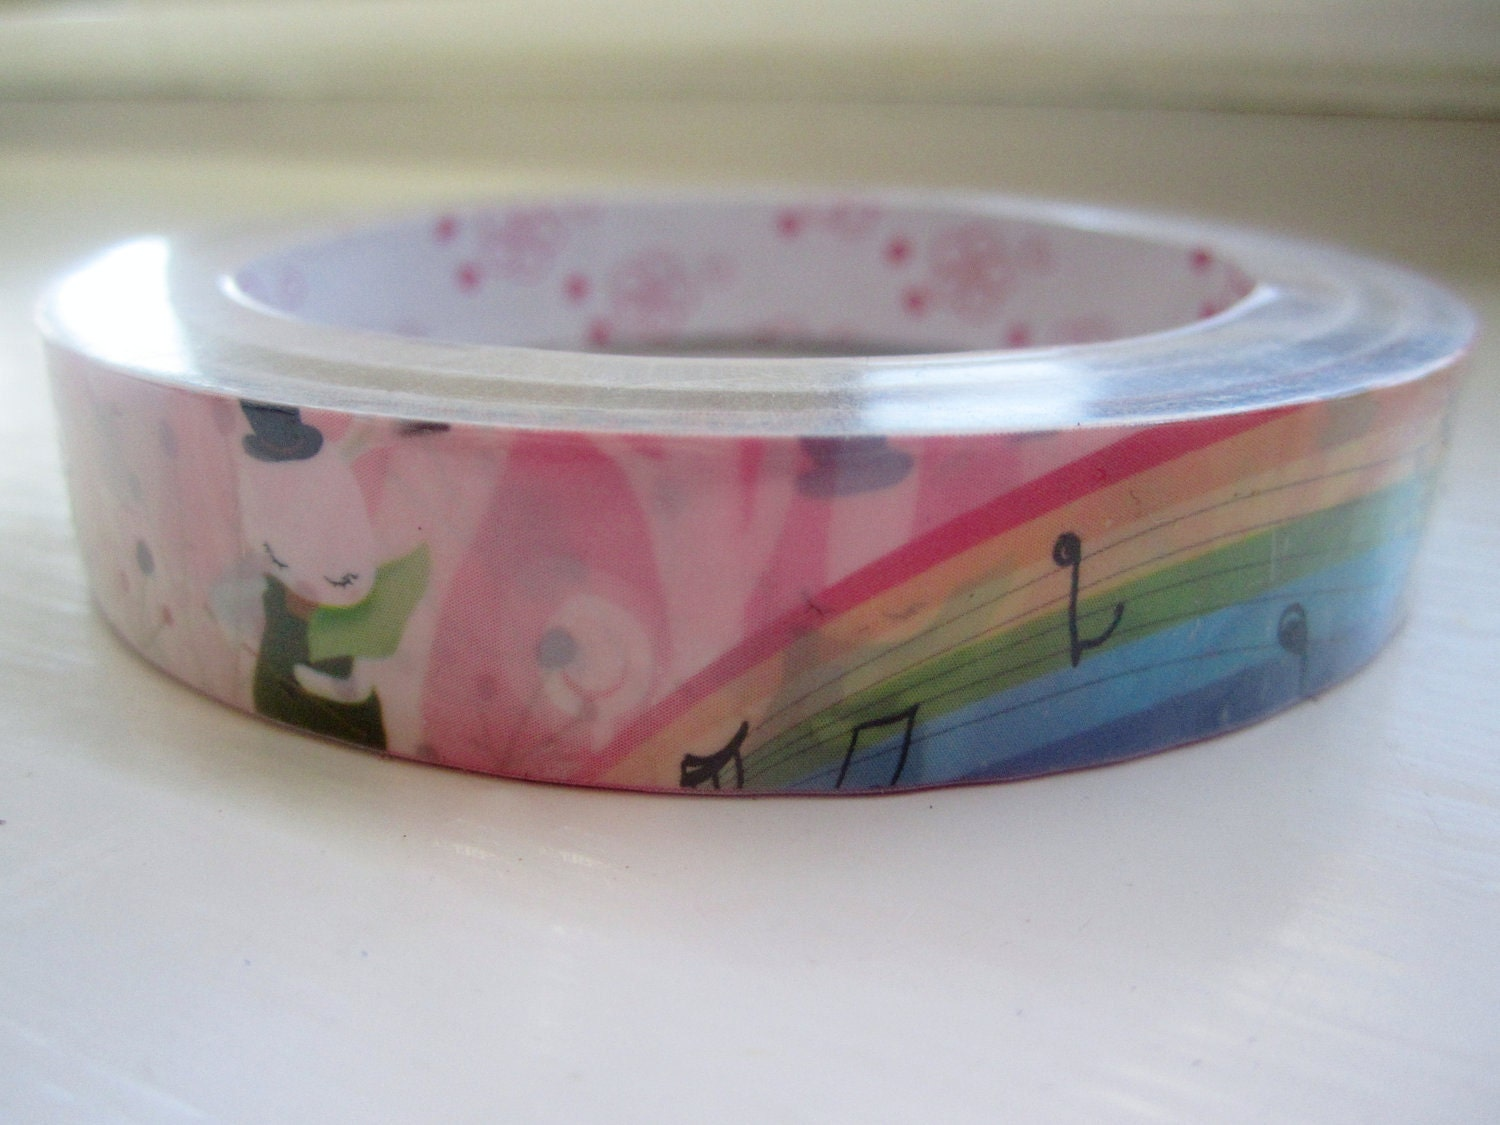 Kawaii Deco Tape Roll of Somewhere Over the Rainbow with Bunnies